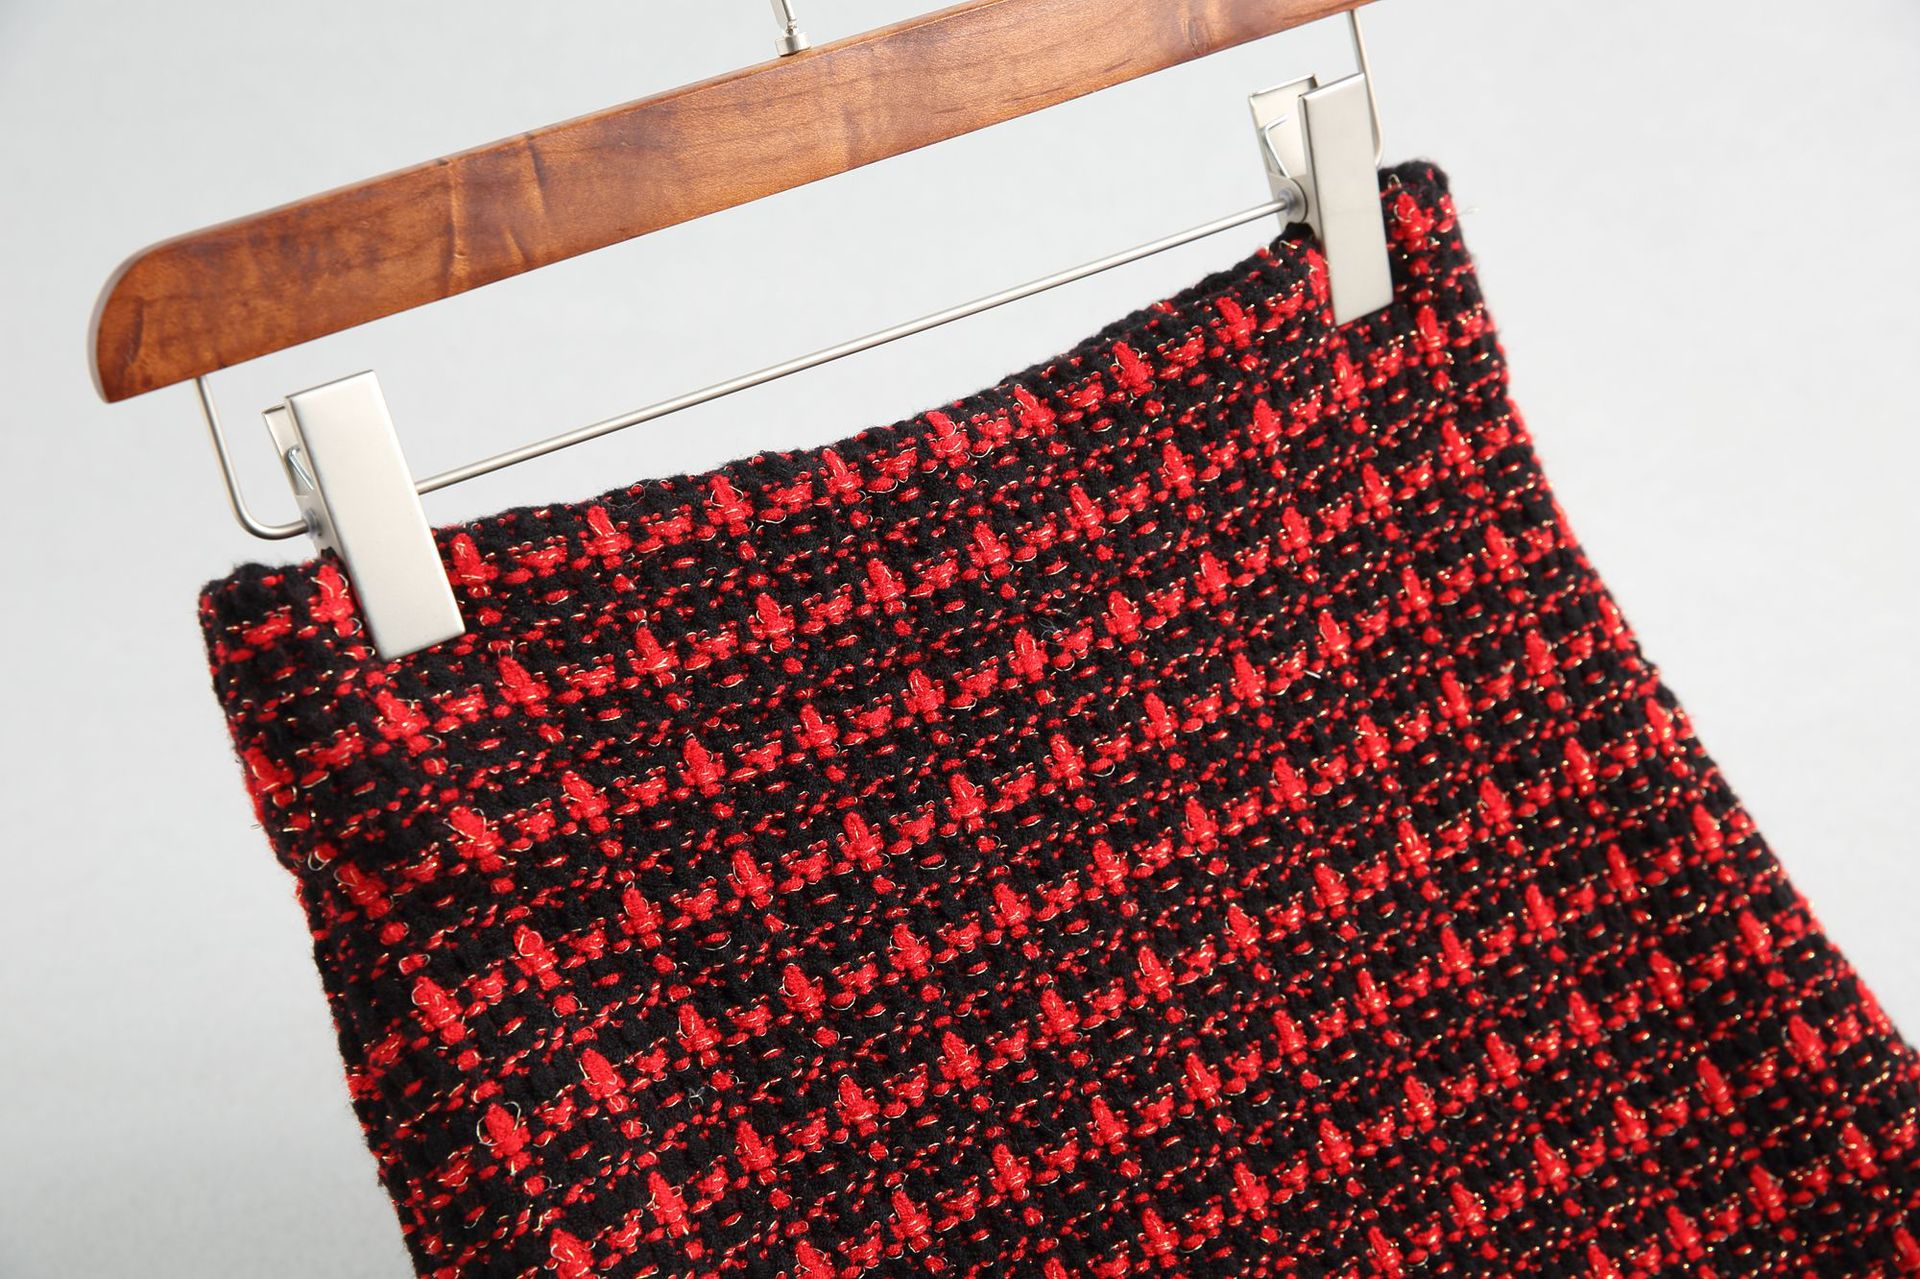 19 Spring autumn New tweed Women's skirt elegant Office Double Breasted plaid knitted Vintage Package Hip midi skirt Female 13